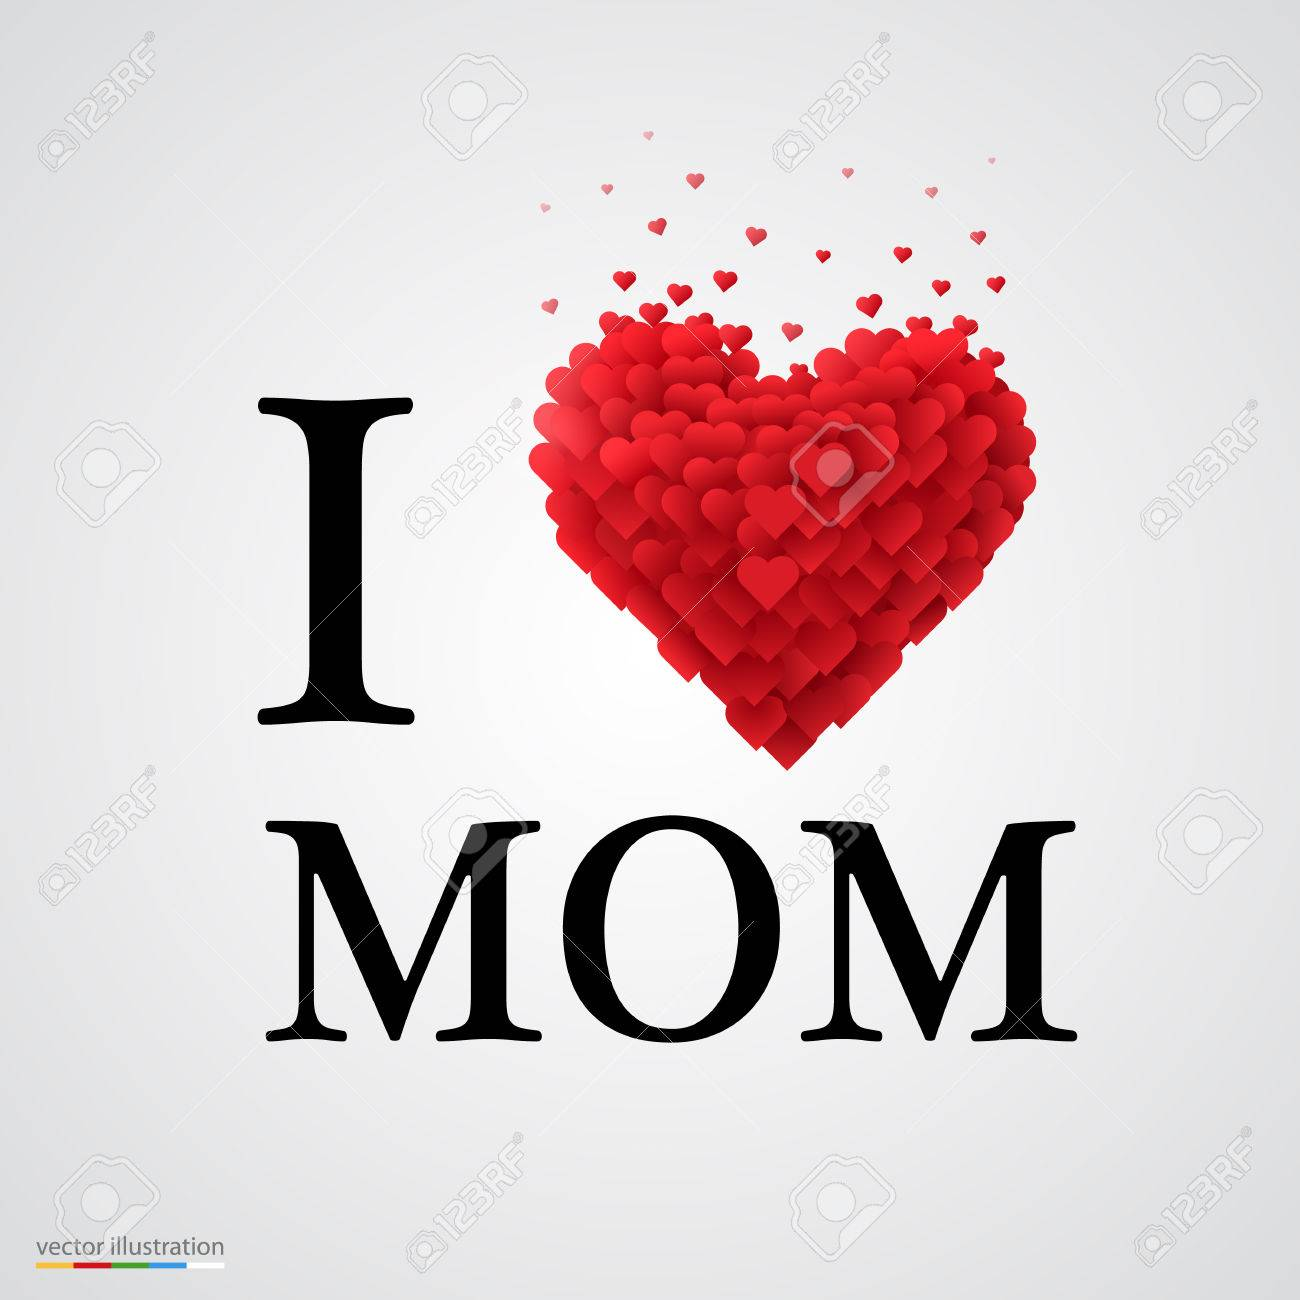 photograph regarding I Mom identify i appreciate mother, font design with center indication.